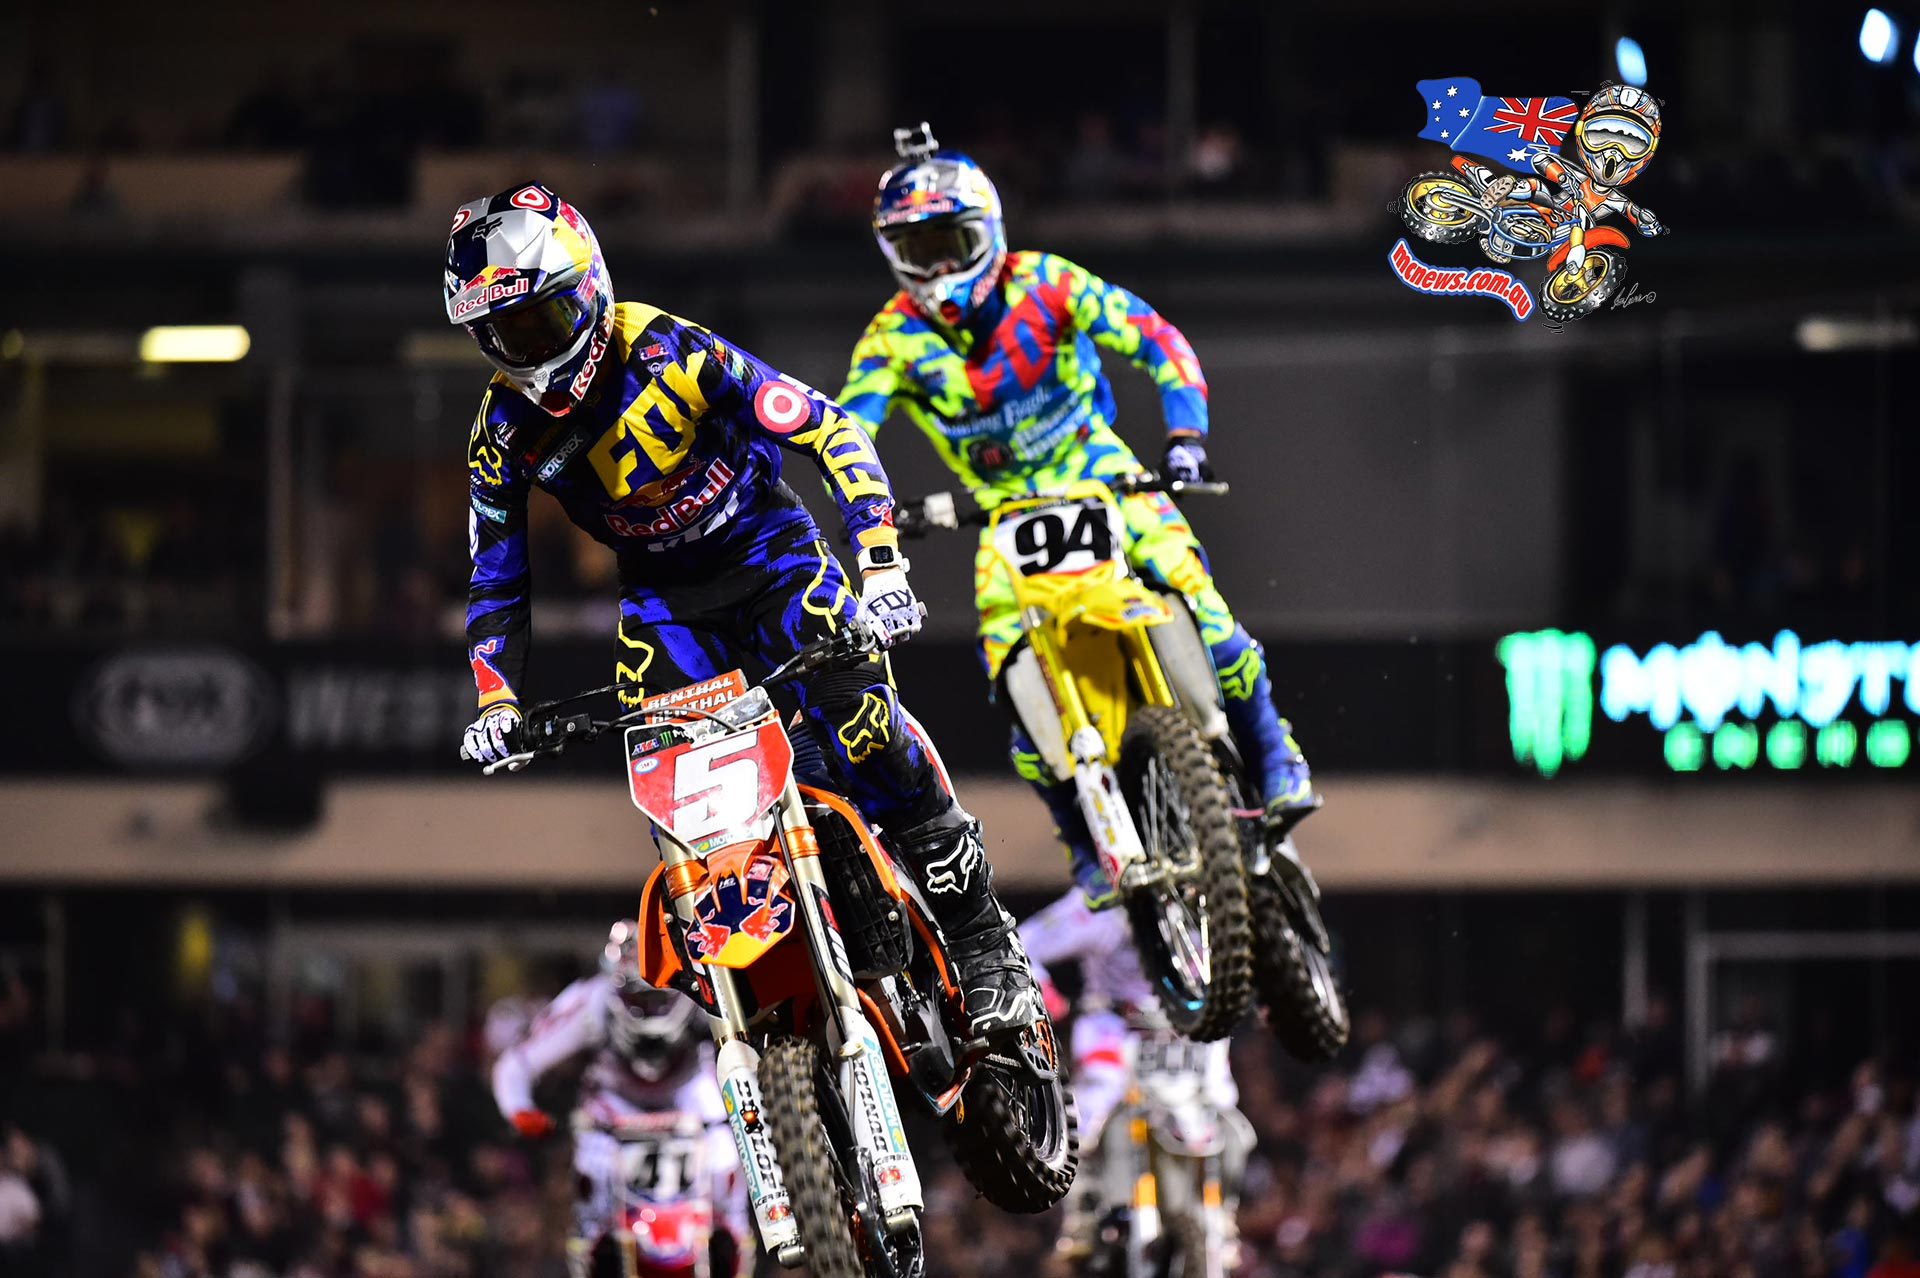 Dungey got the monkey off his back at A3